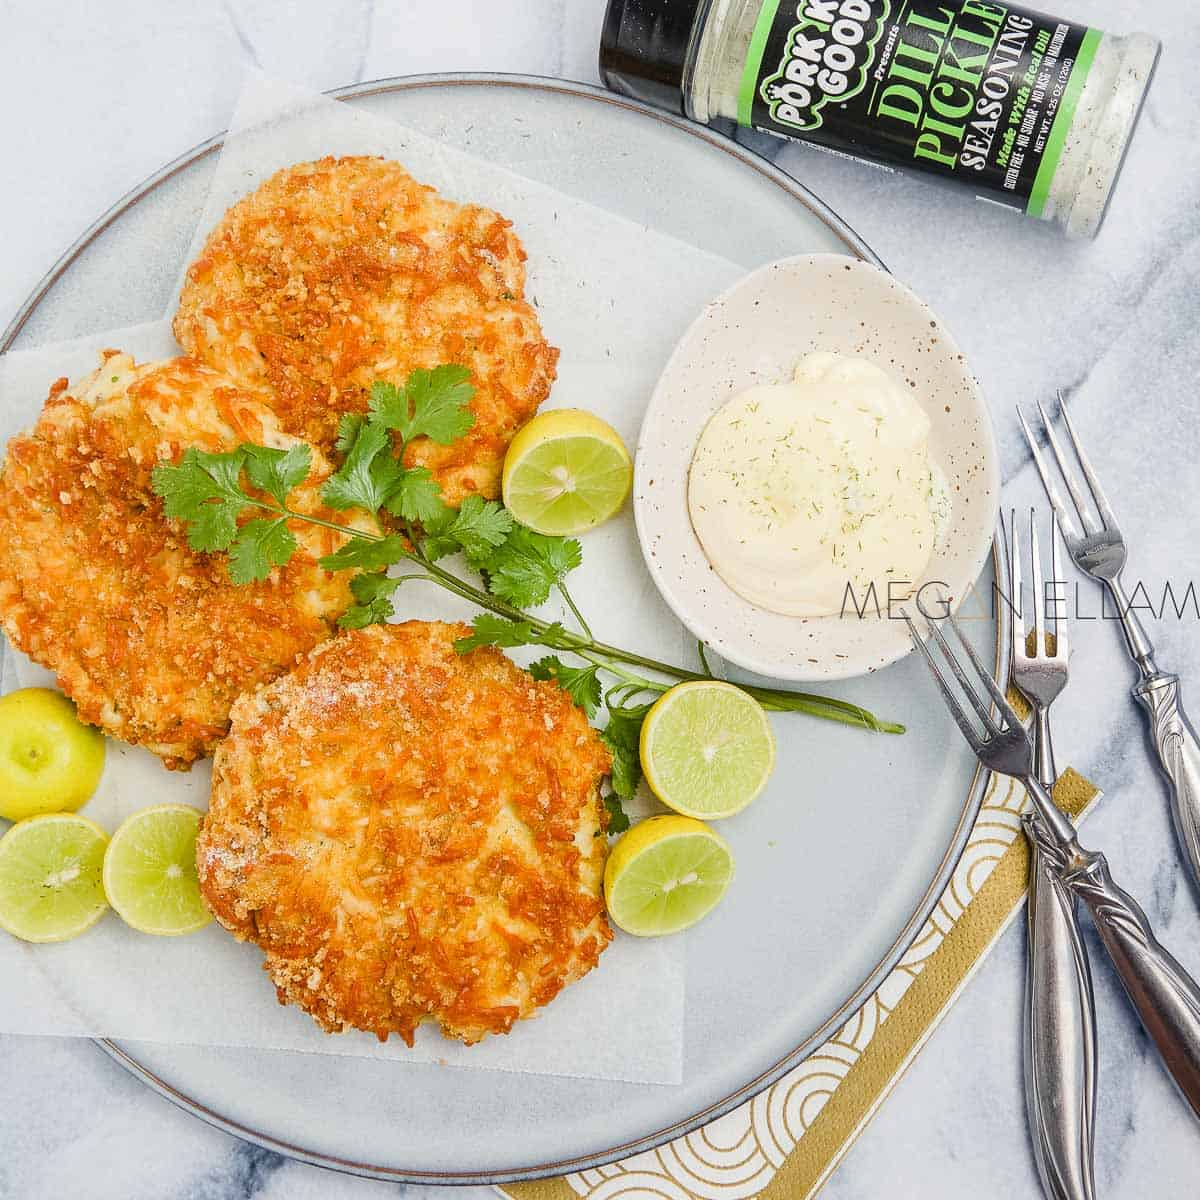 a plate with keto fish cakes, halved limes, tartare sauce with seafood forks beside it